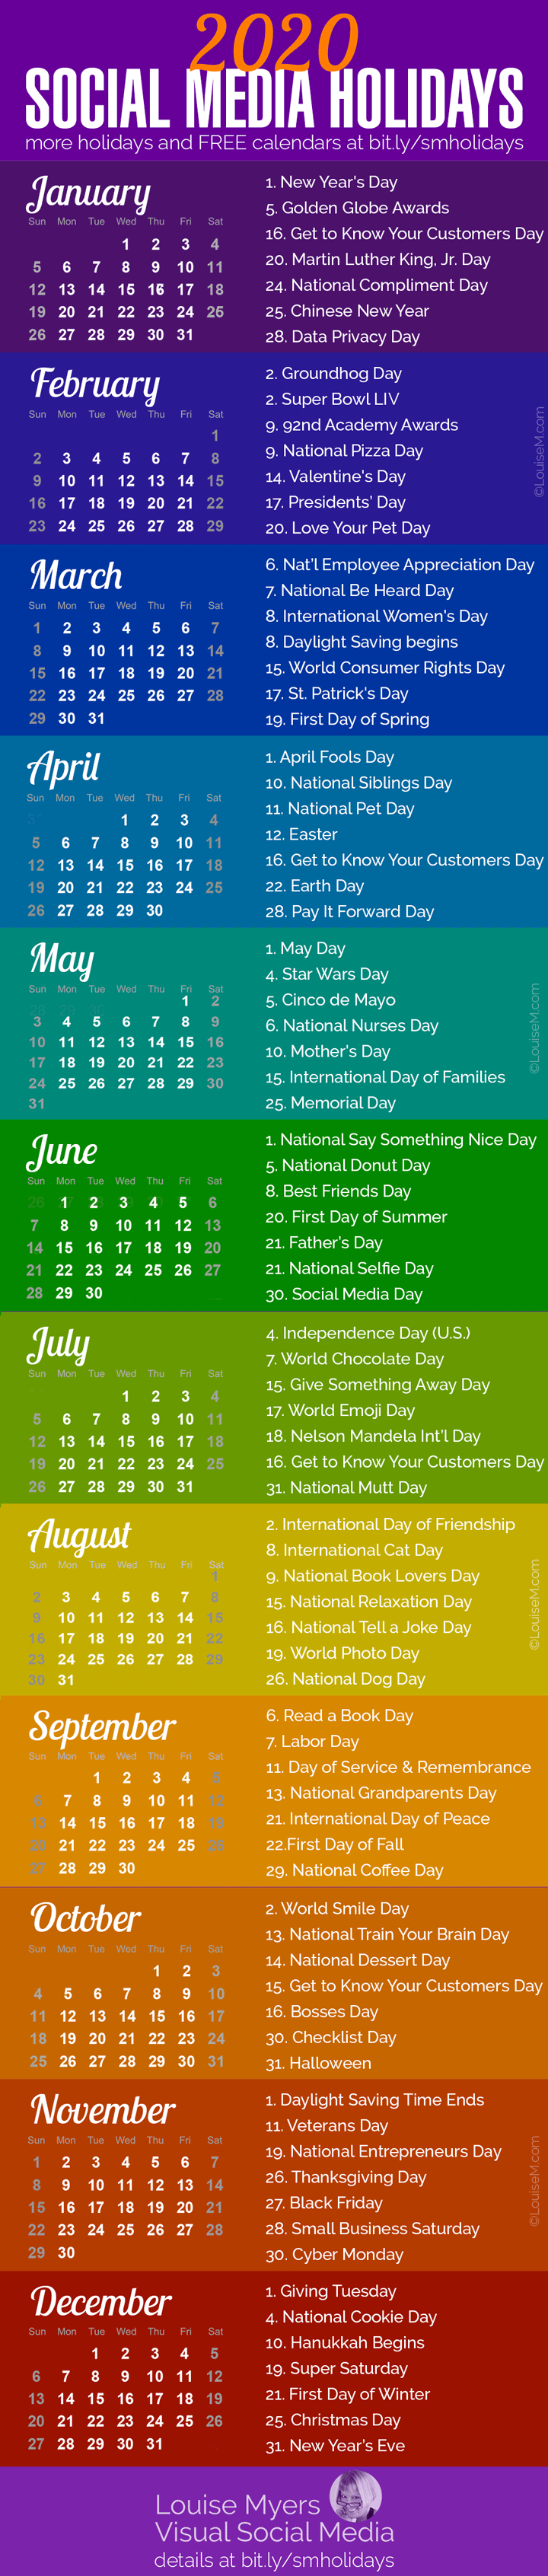 84 Social Media Holidays You Need In 2020: Indispensable! within The Ultimate Social Media Holiday Calendar For 2020